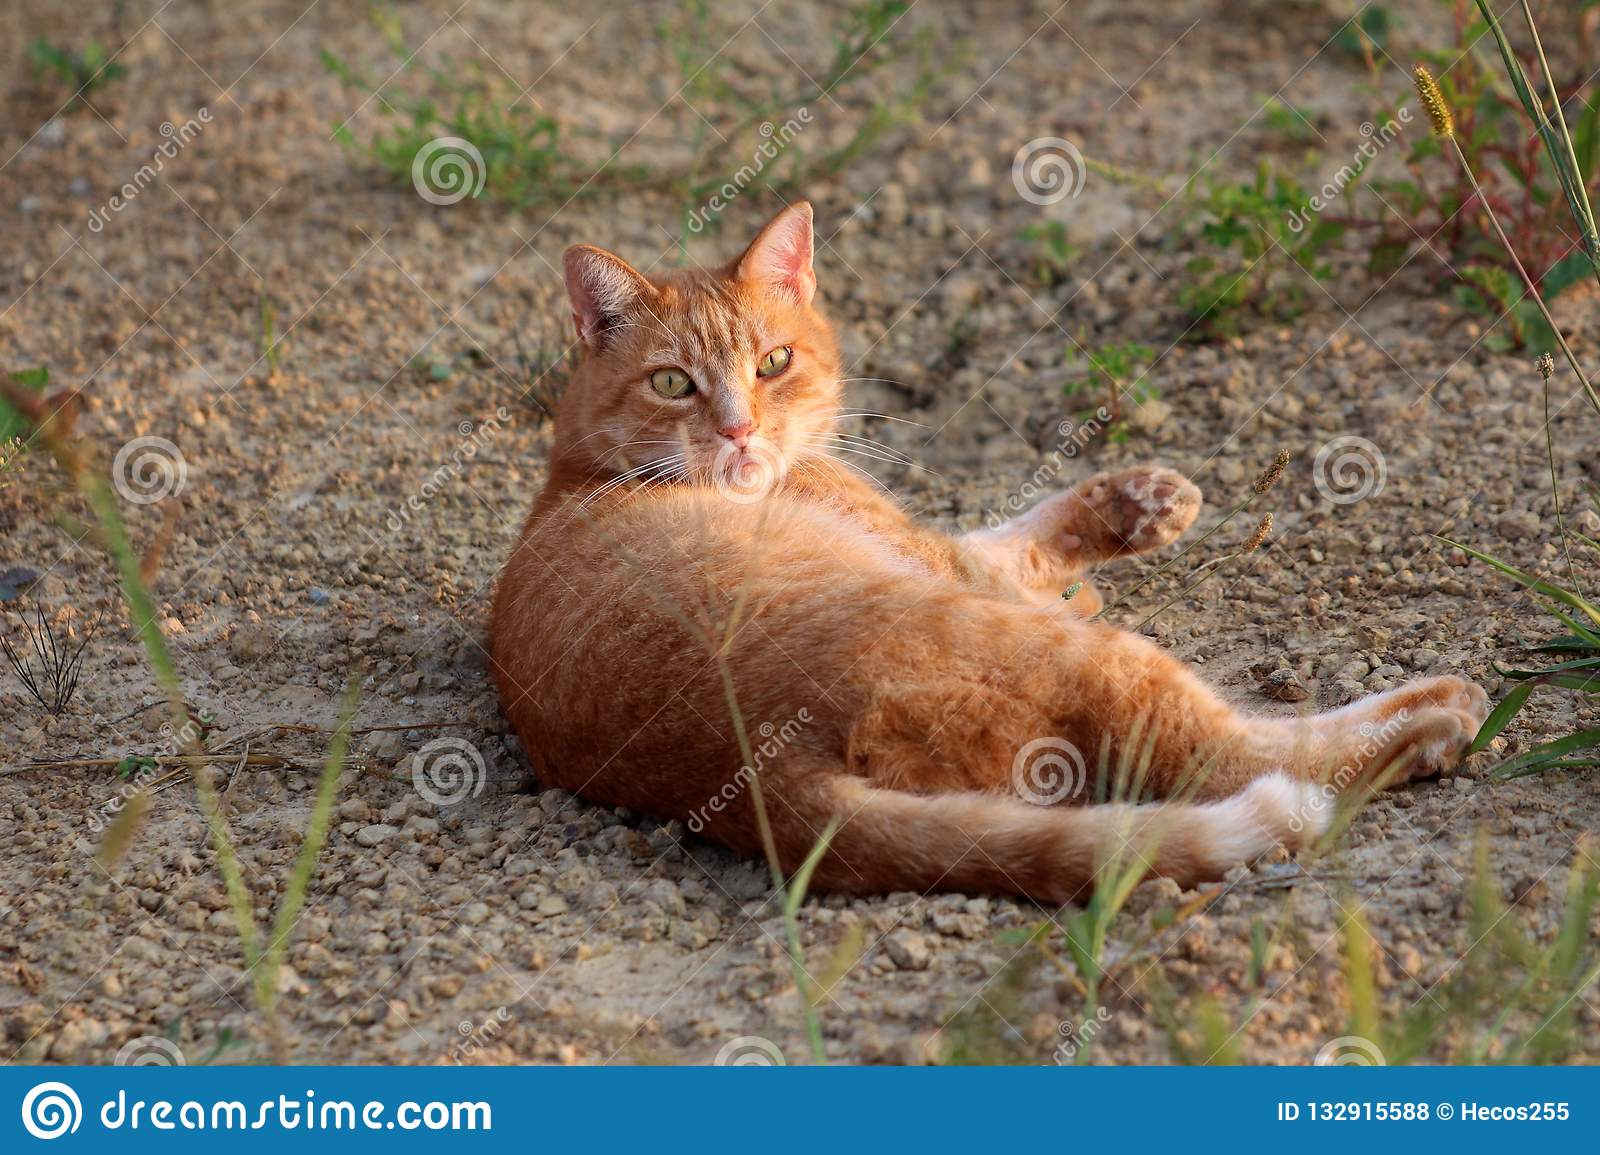 Light brown family cat woken from dream while lying on gravel and looking confused directly at camera